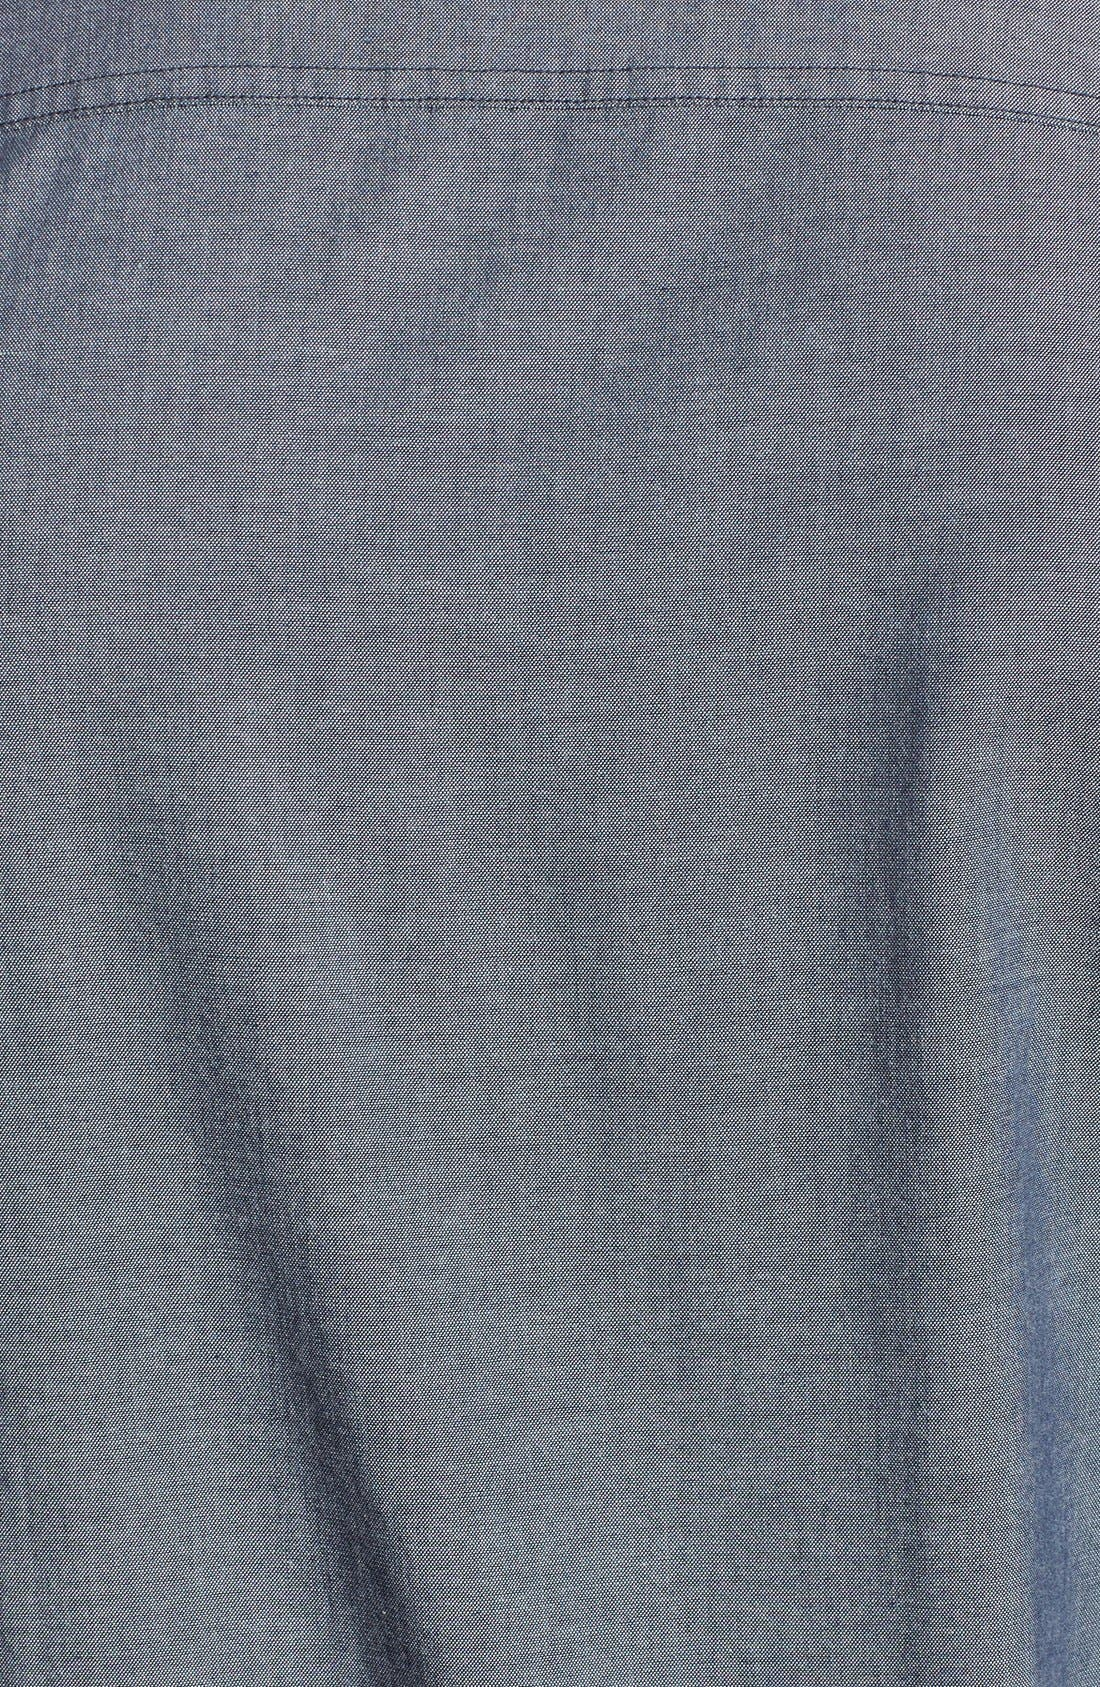 Alternate Image 4  - Wallin & Bros. 'Workwear' Trim Fit Chambray Sport Shirt (Regular & Tall)